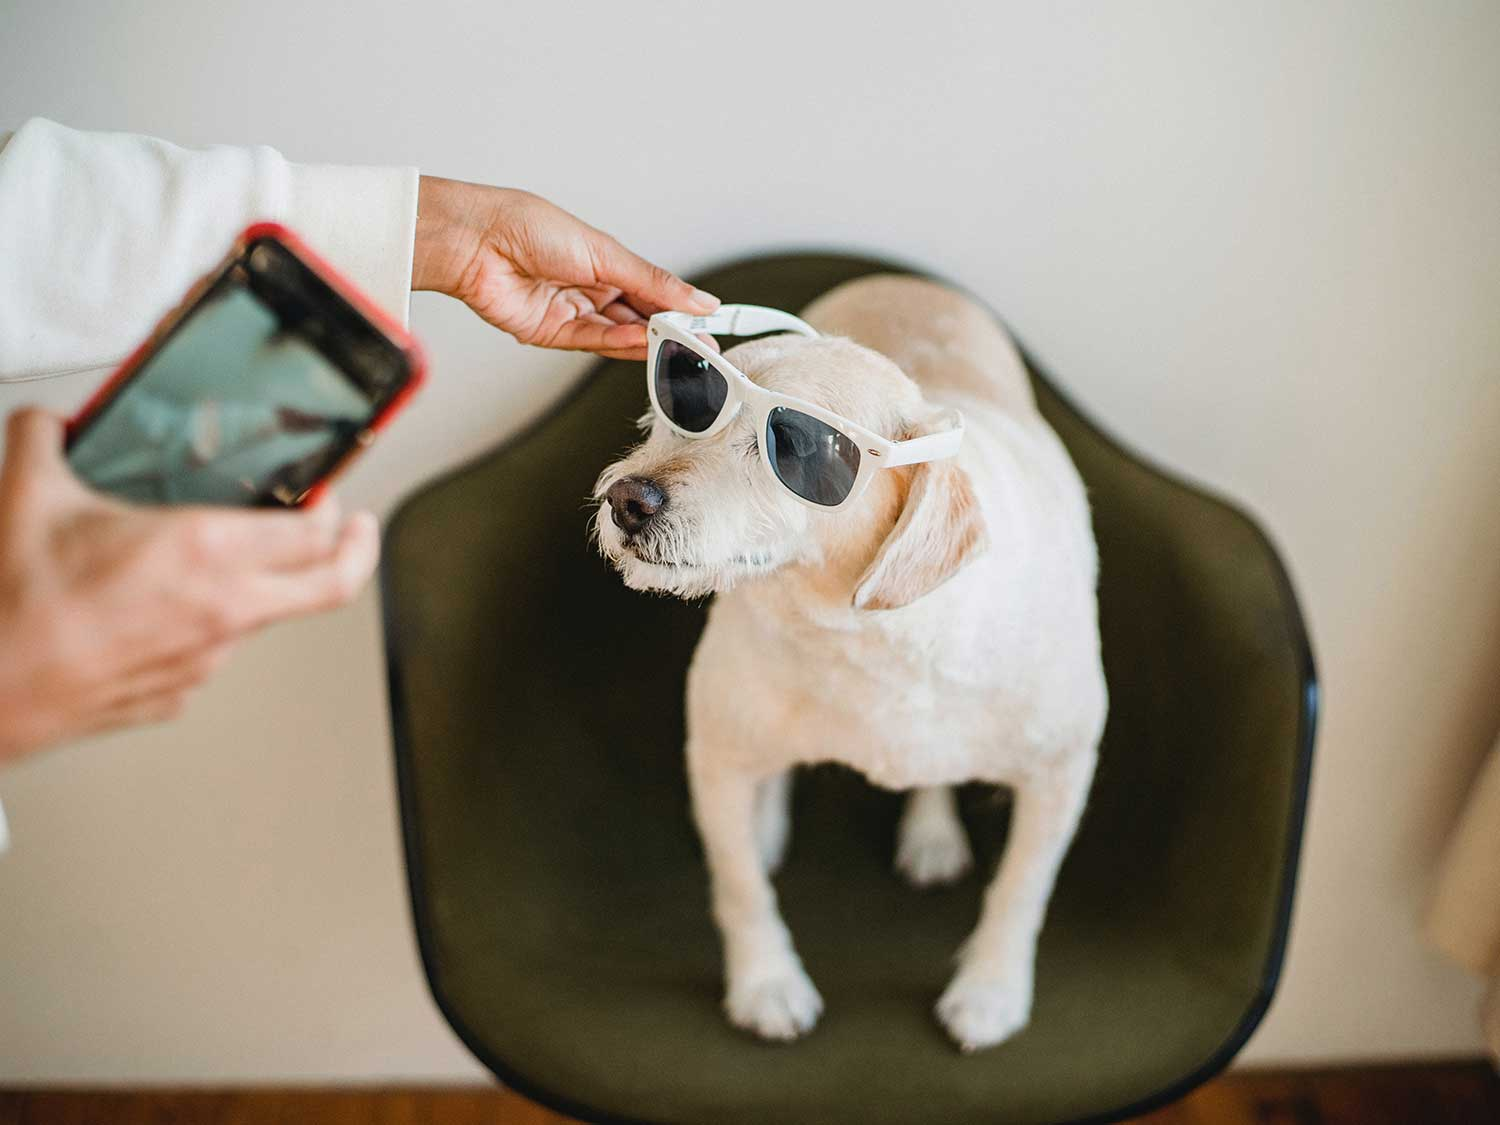 Dog wearing sunglasses.